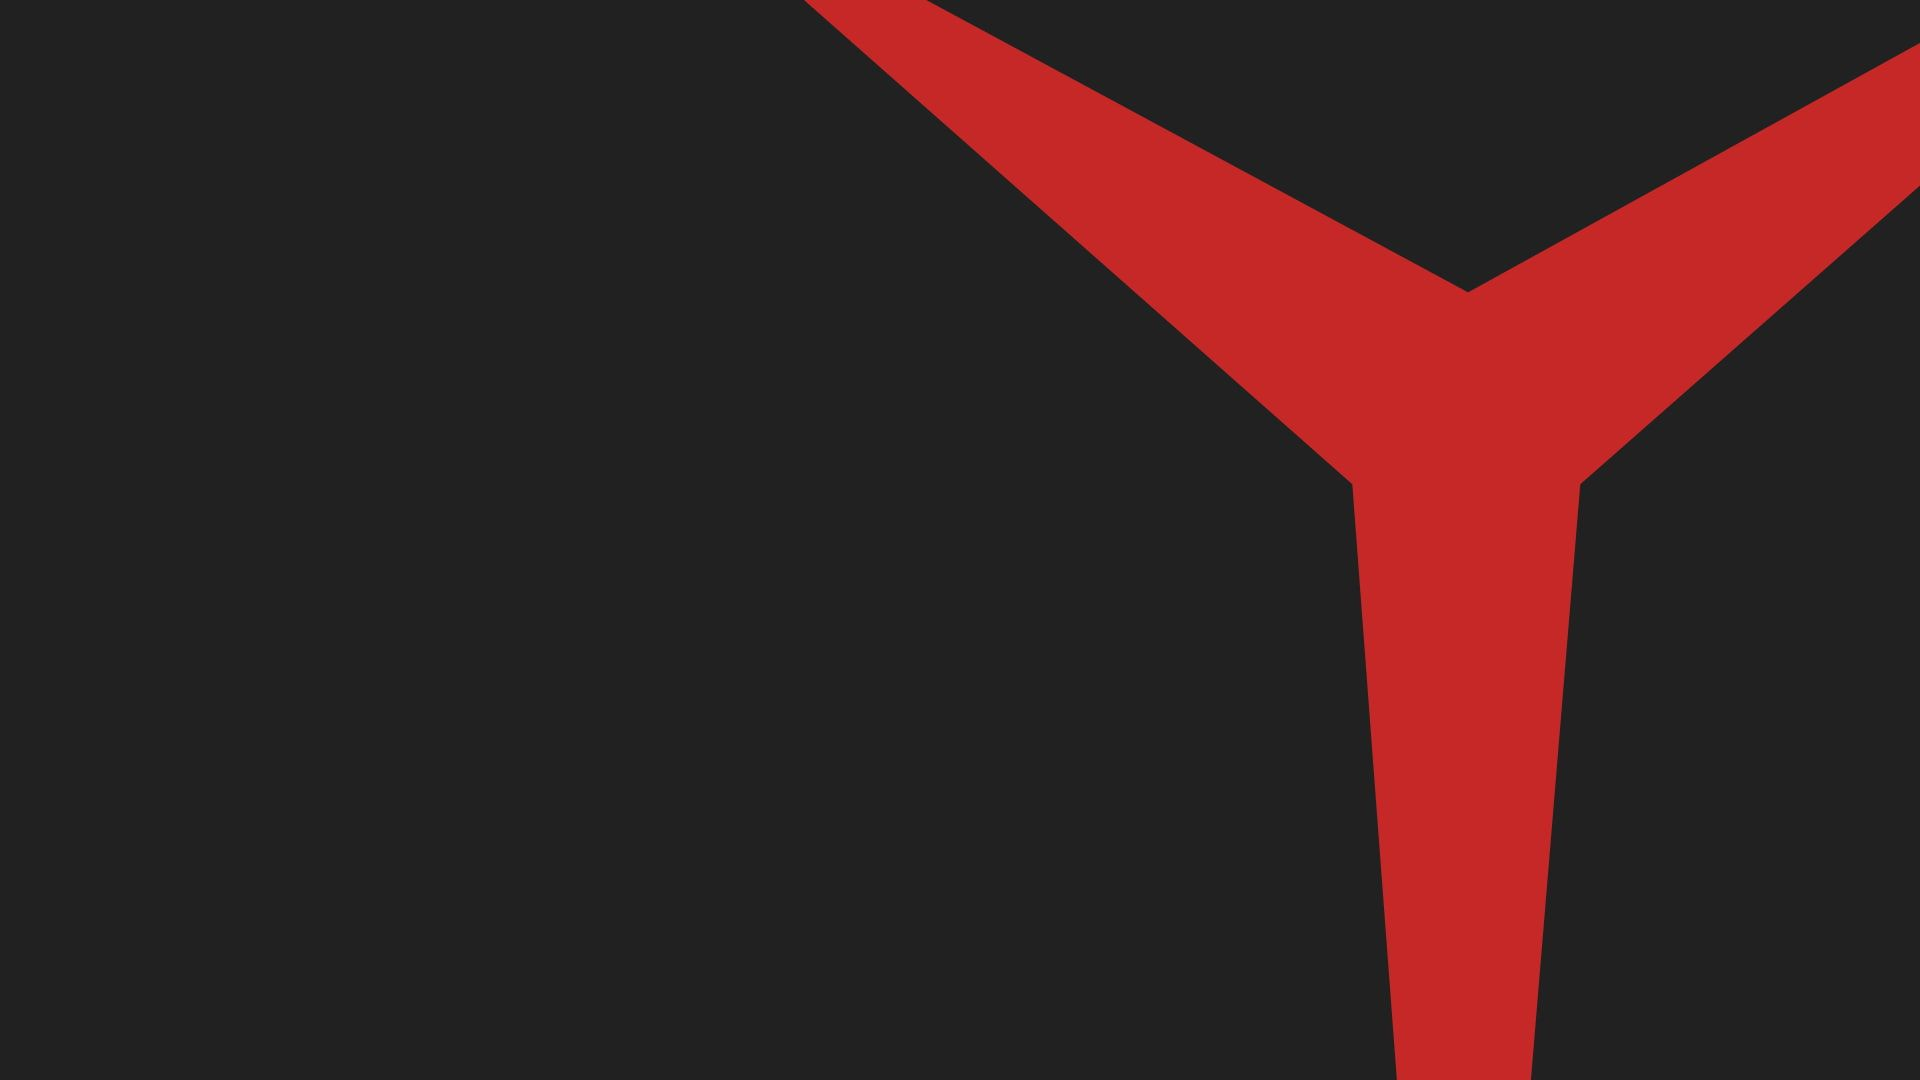 Lenovo Legion Minimalism Red 1080p Wallpaper